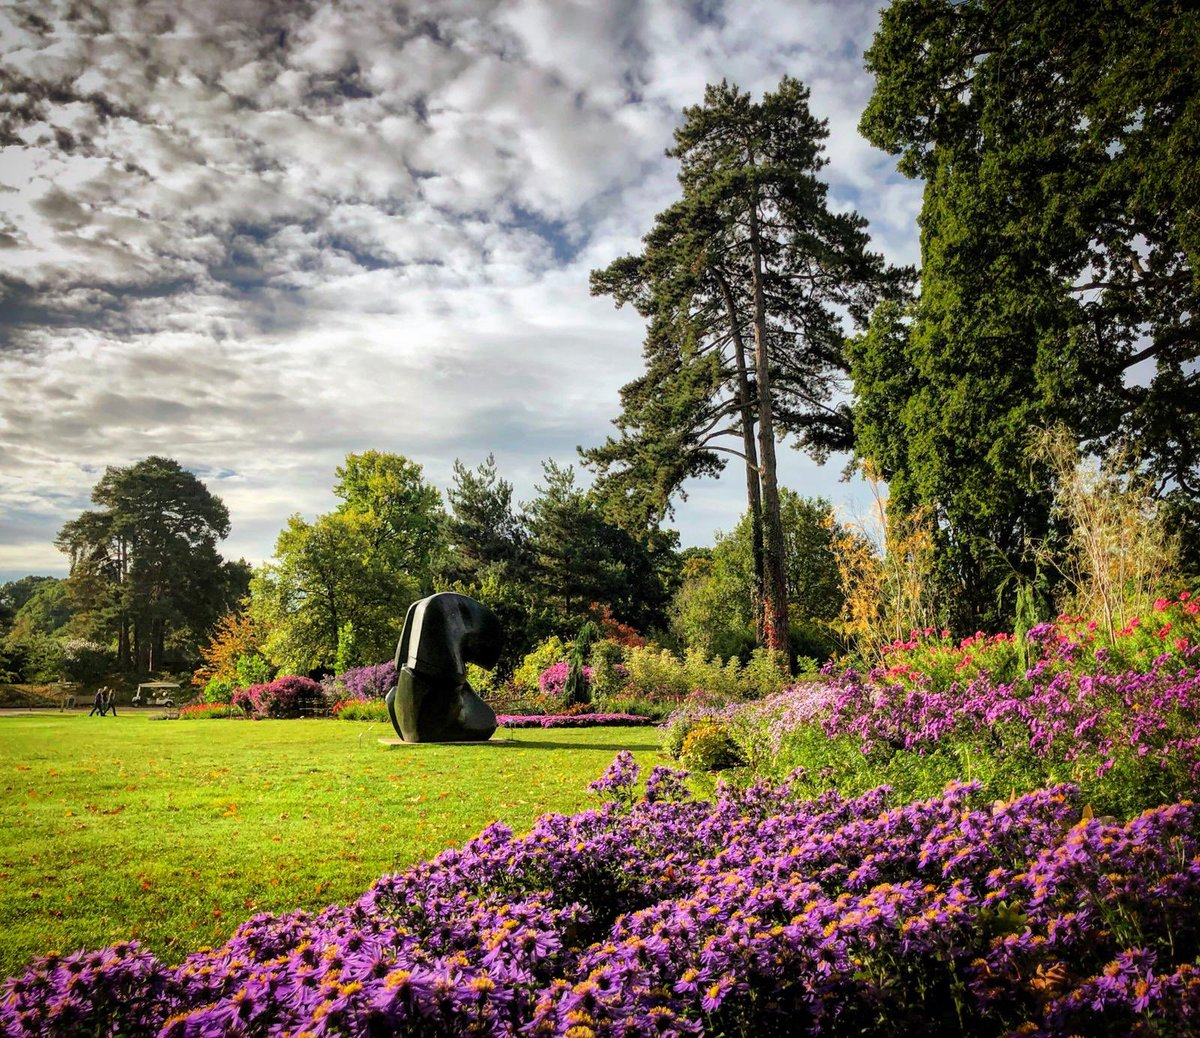 We have an exciting vacancy on our Herbaceous curatorial team @RHSWisley if you'd like to be part of something special and you are passionate about horticulture please take a look at our jobs page and get in touch rhs.org.uk/about-the-rhs/… #hortjobs #horticulturejobs #hortcareers